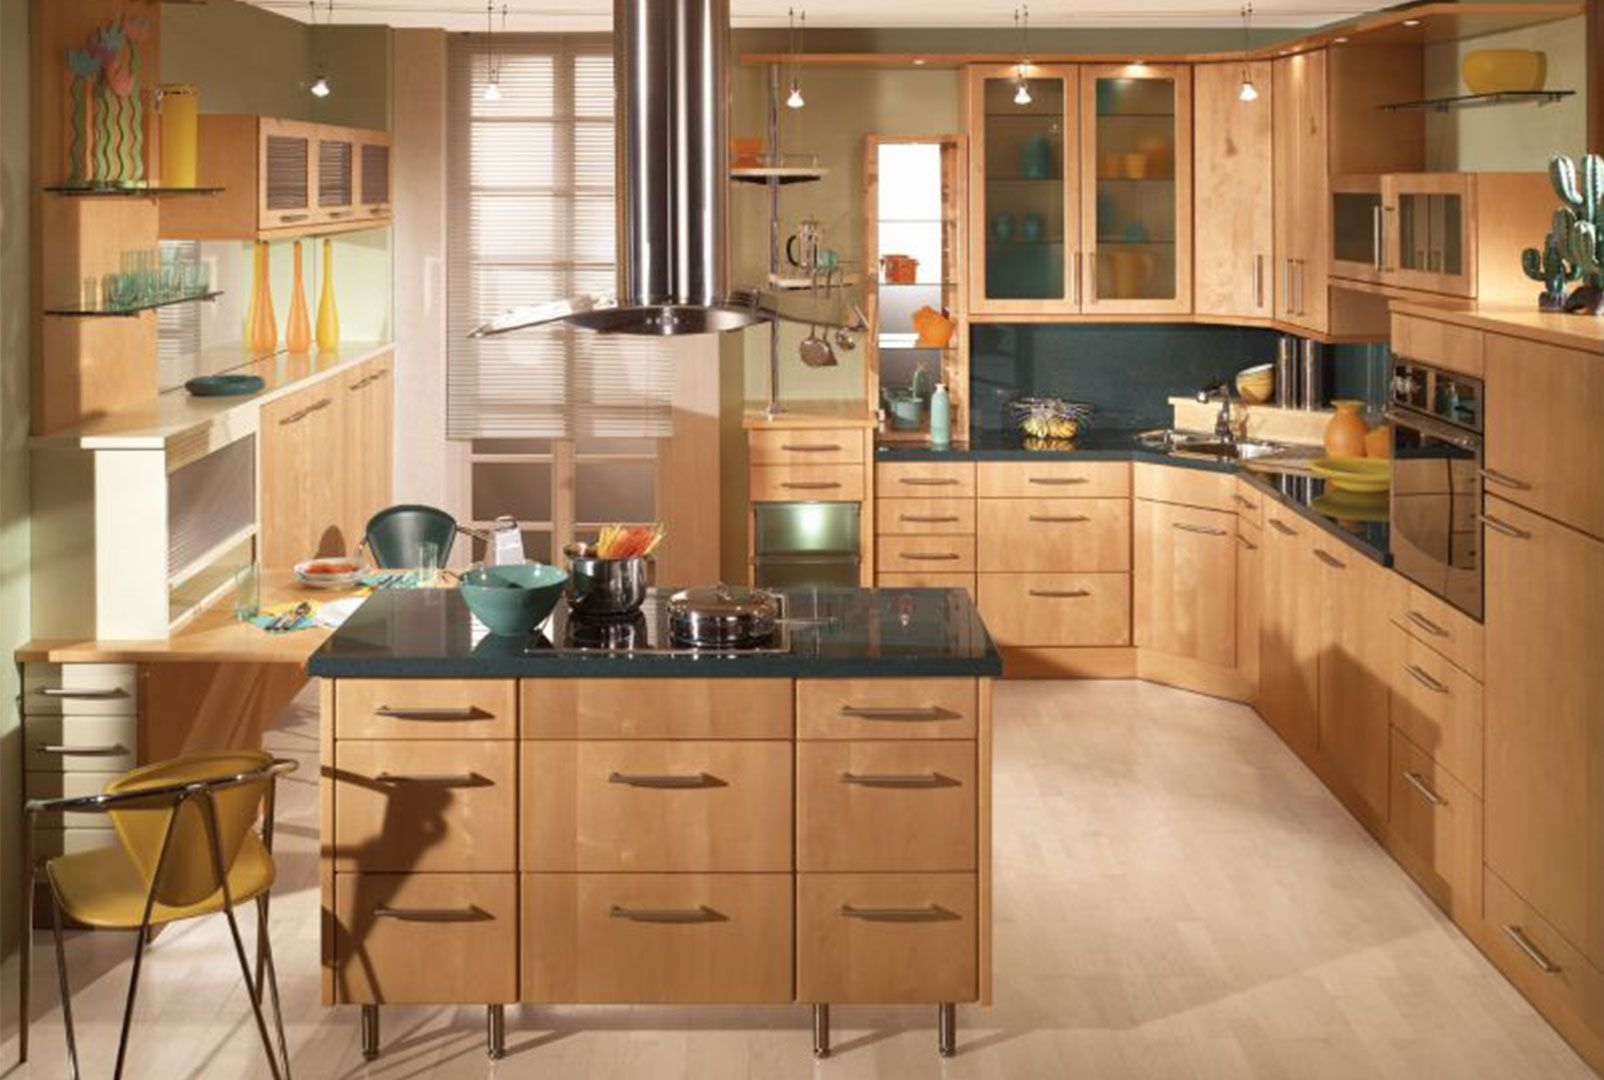 Spectacular Galley Kitchen Designs Layouts Kitchentoday